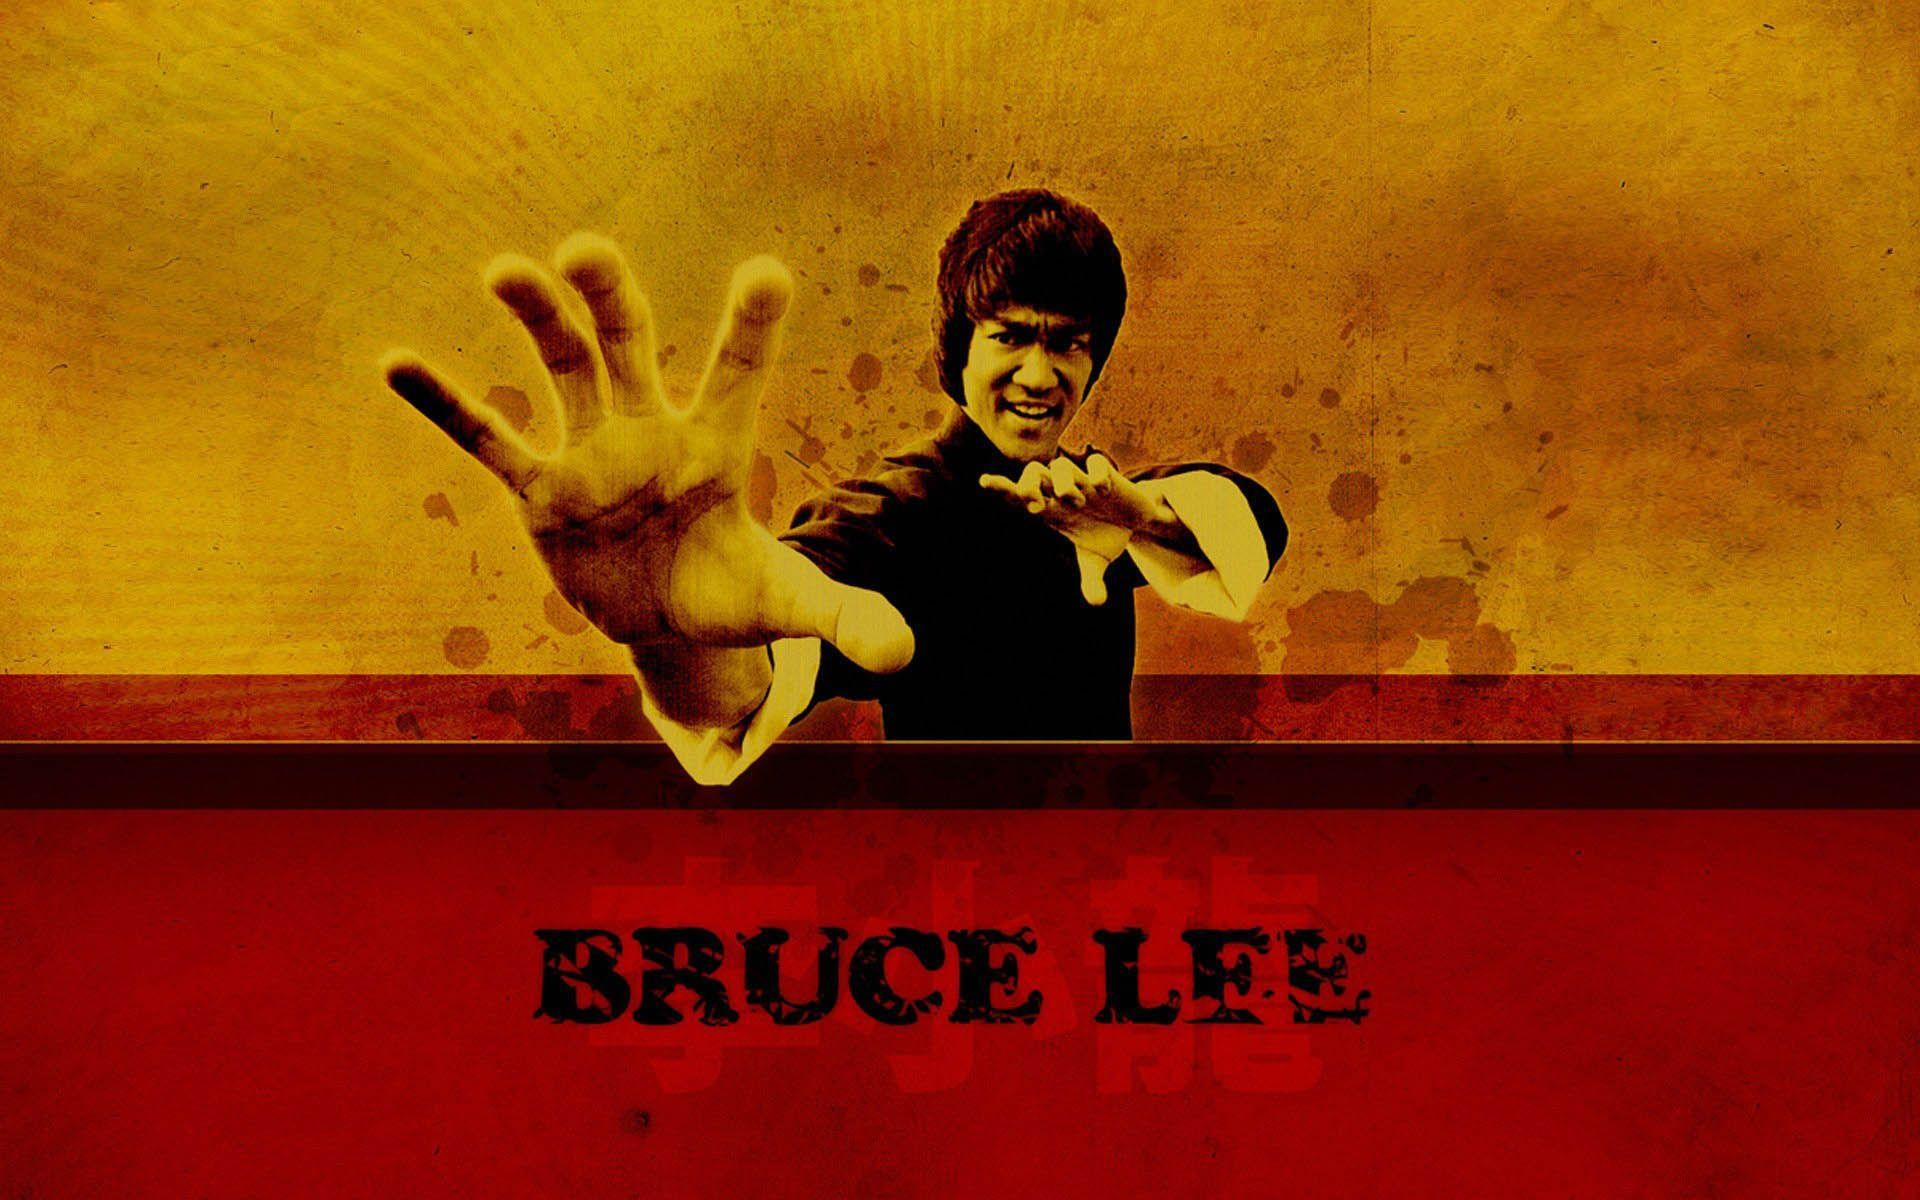 Bruce Lee HD Desktop Background